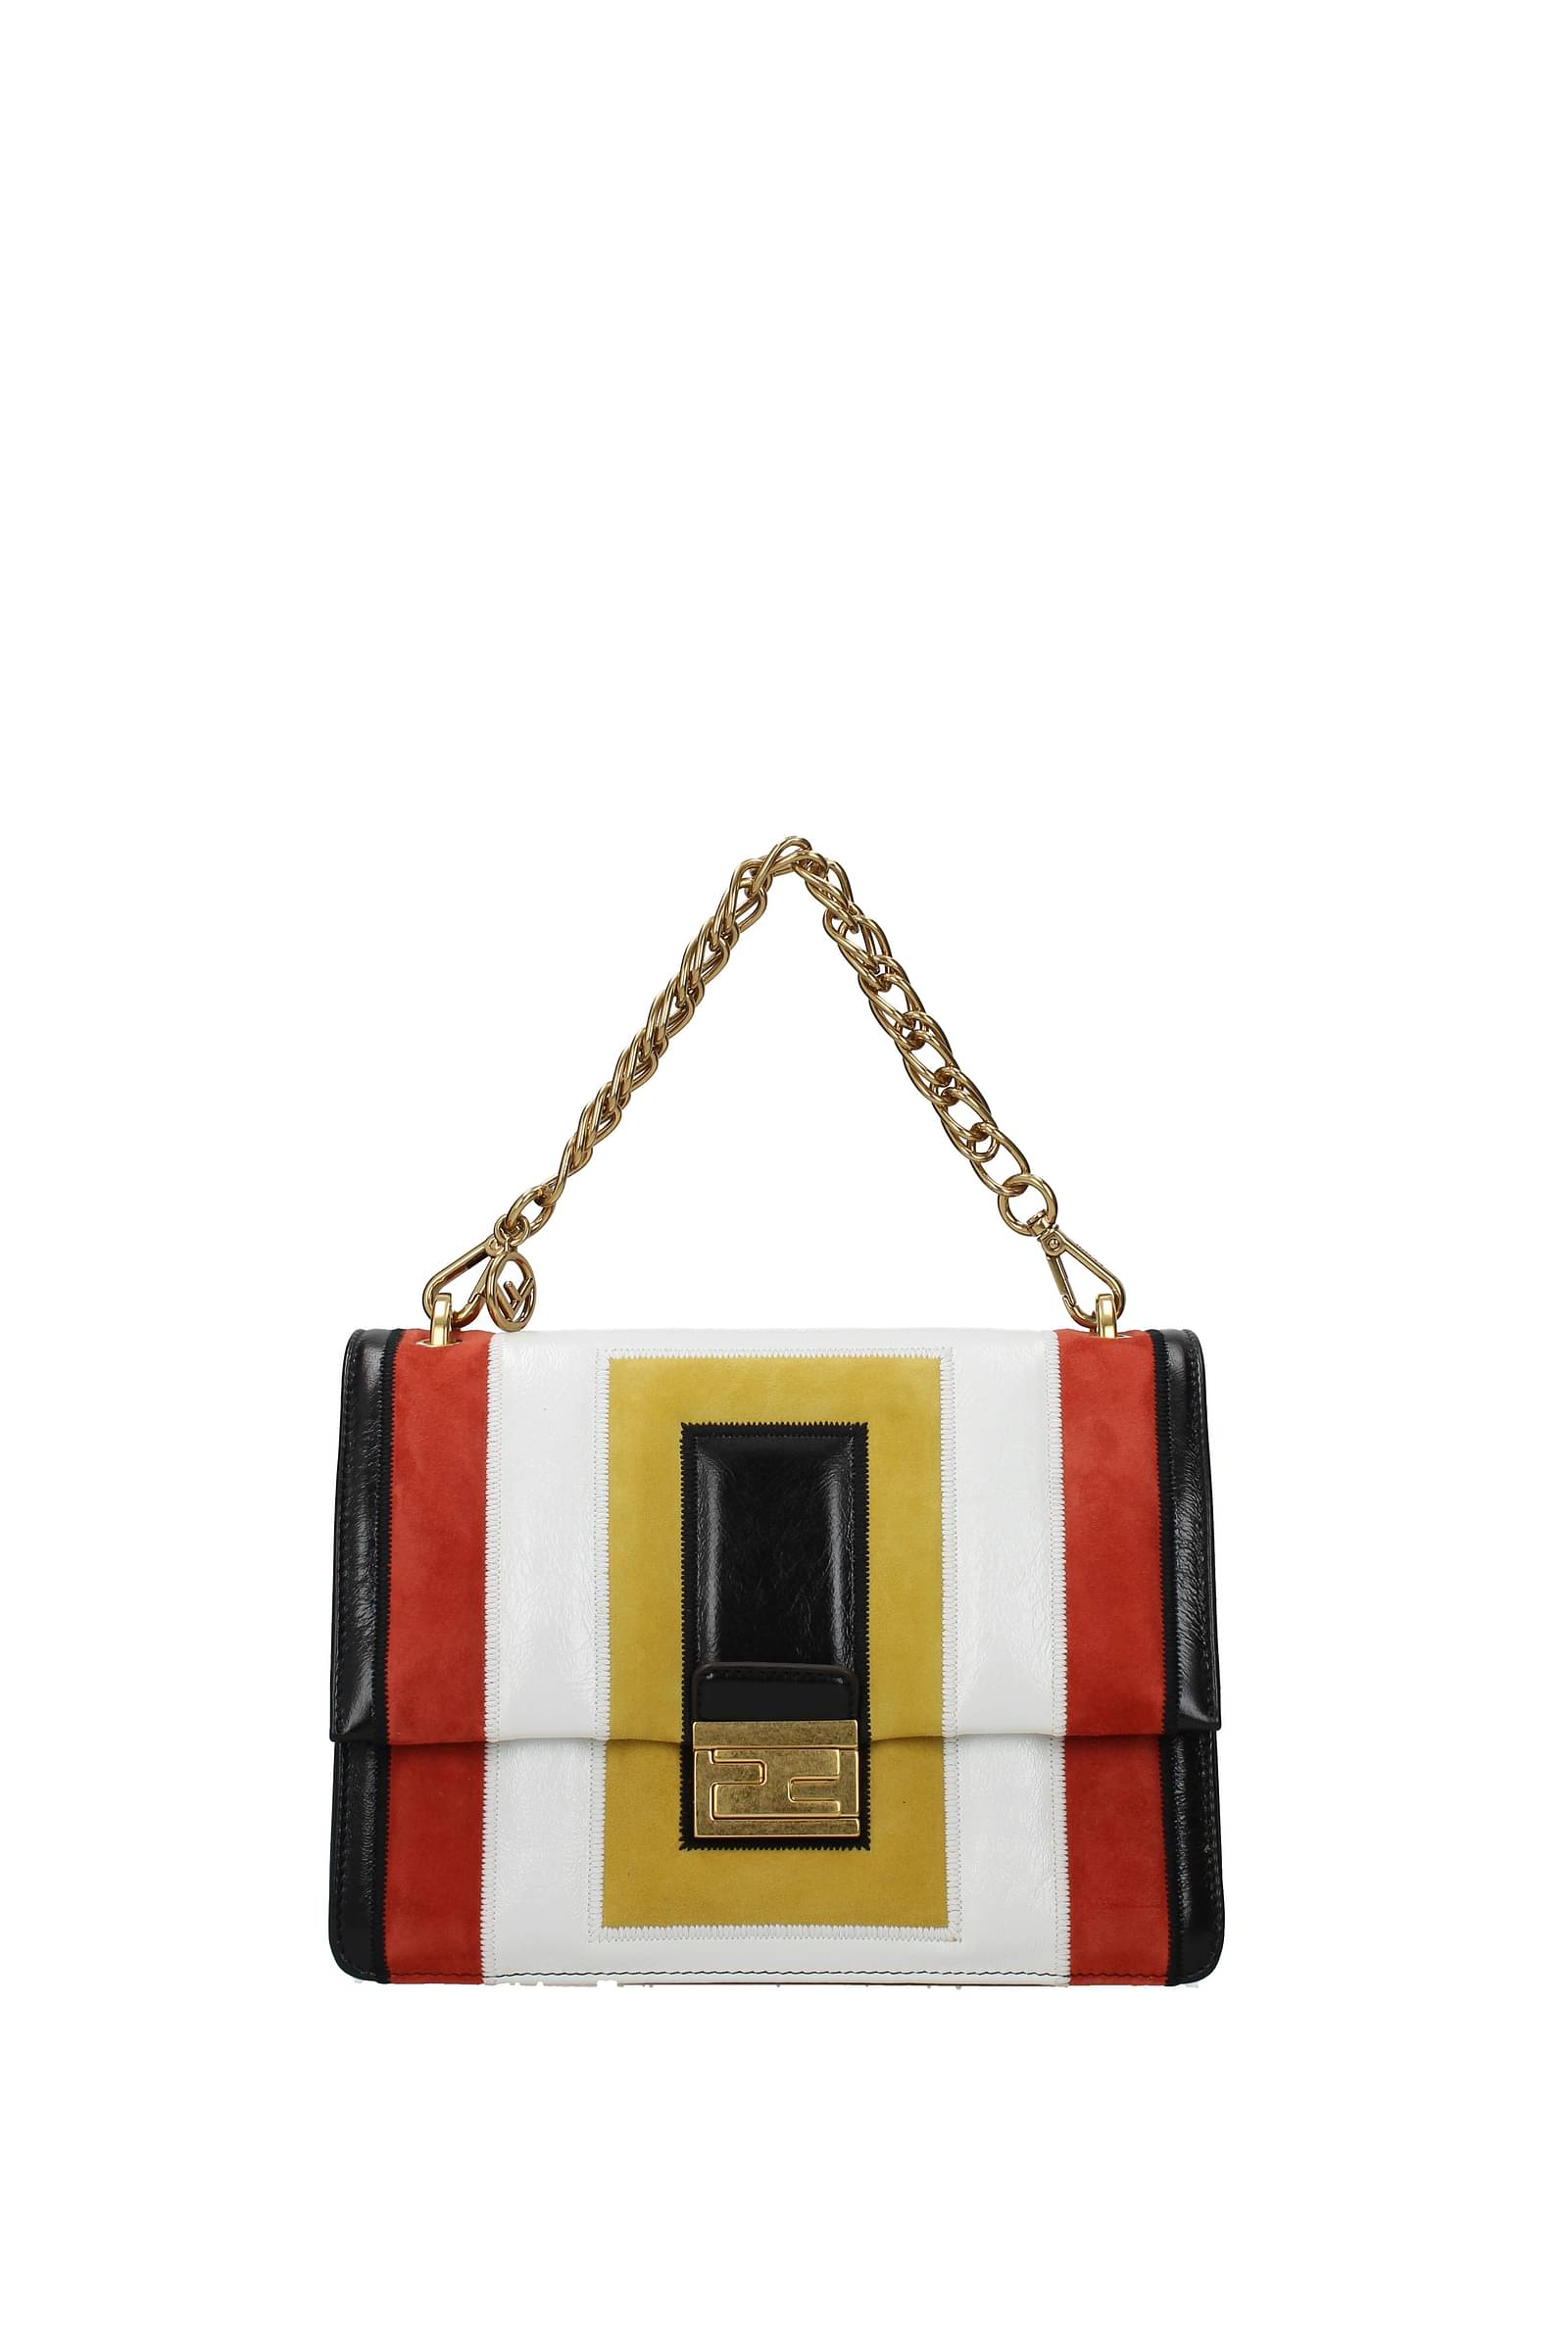 Fendi outlet: discounted prices for